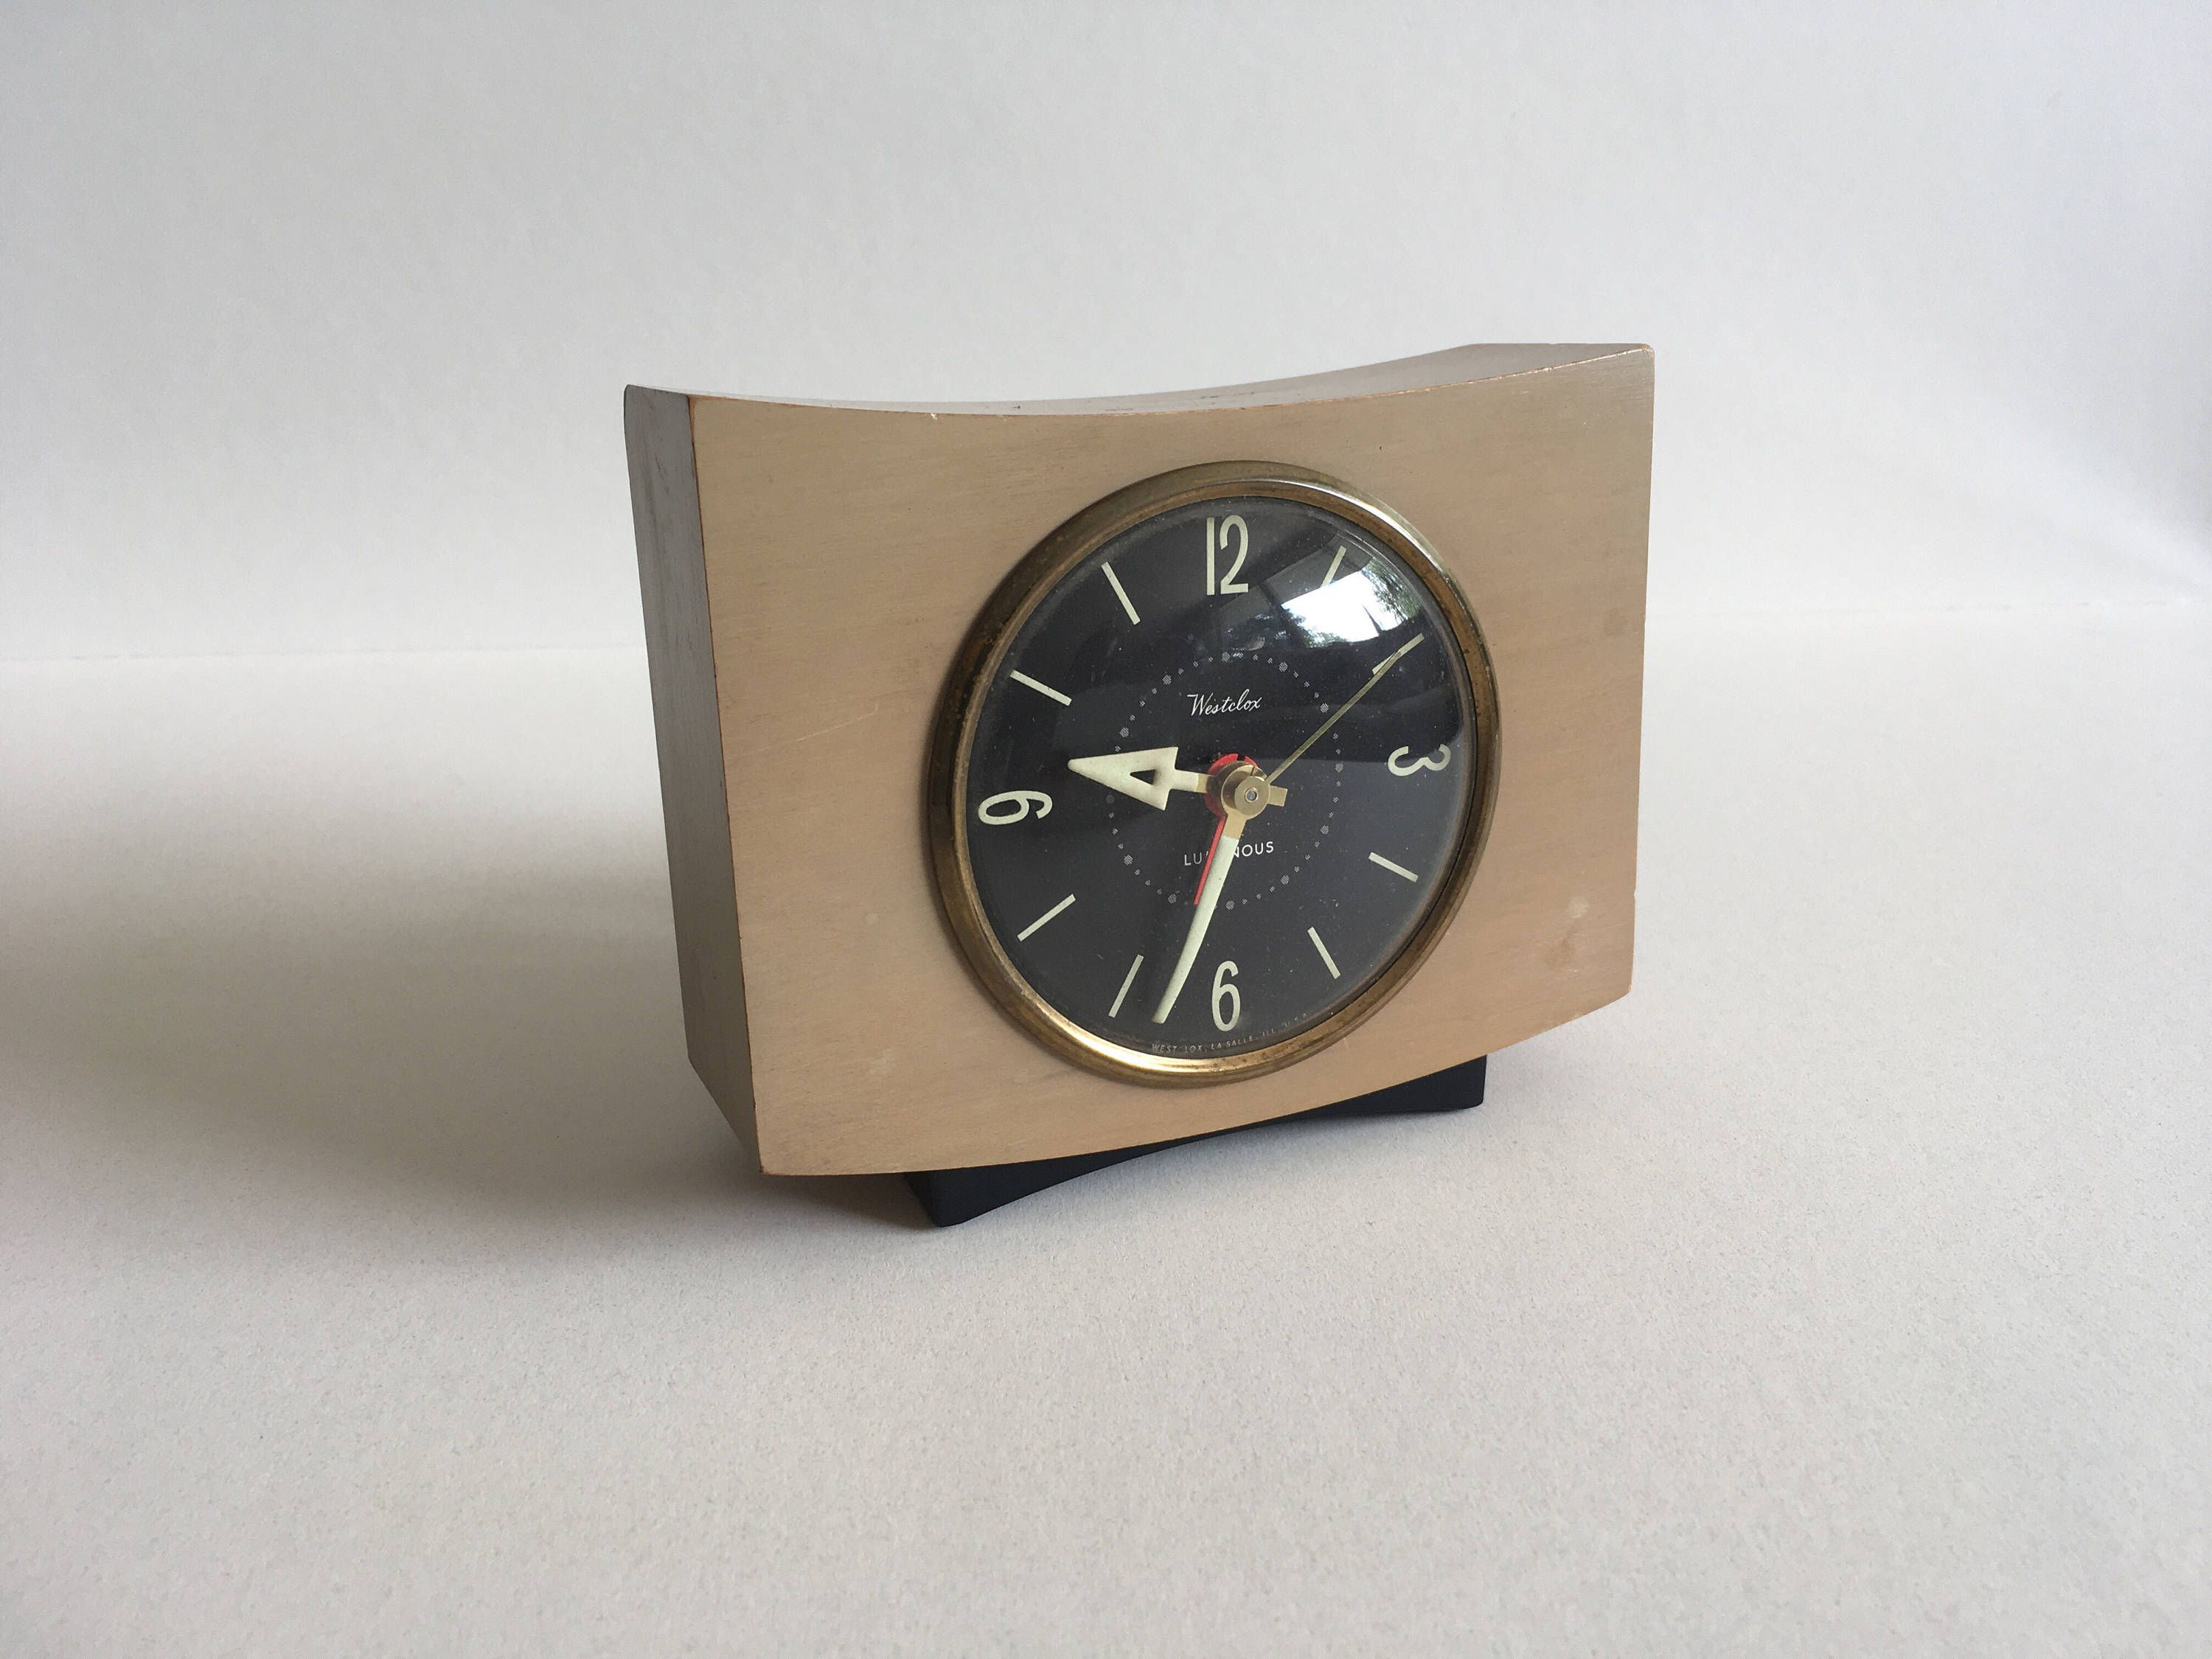 Vintage Westclox Electric Clock By Bittercressmcm On Etsy Httpswwwetsy